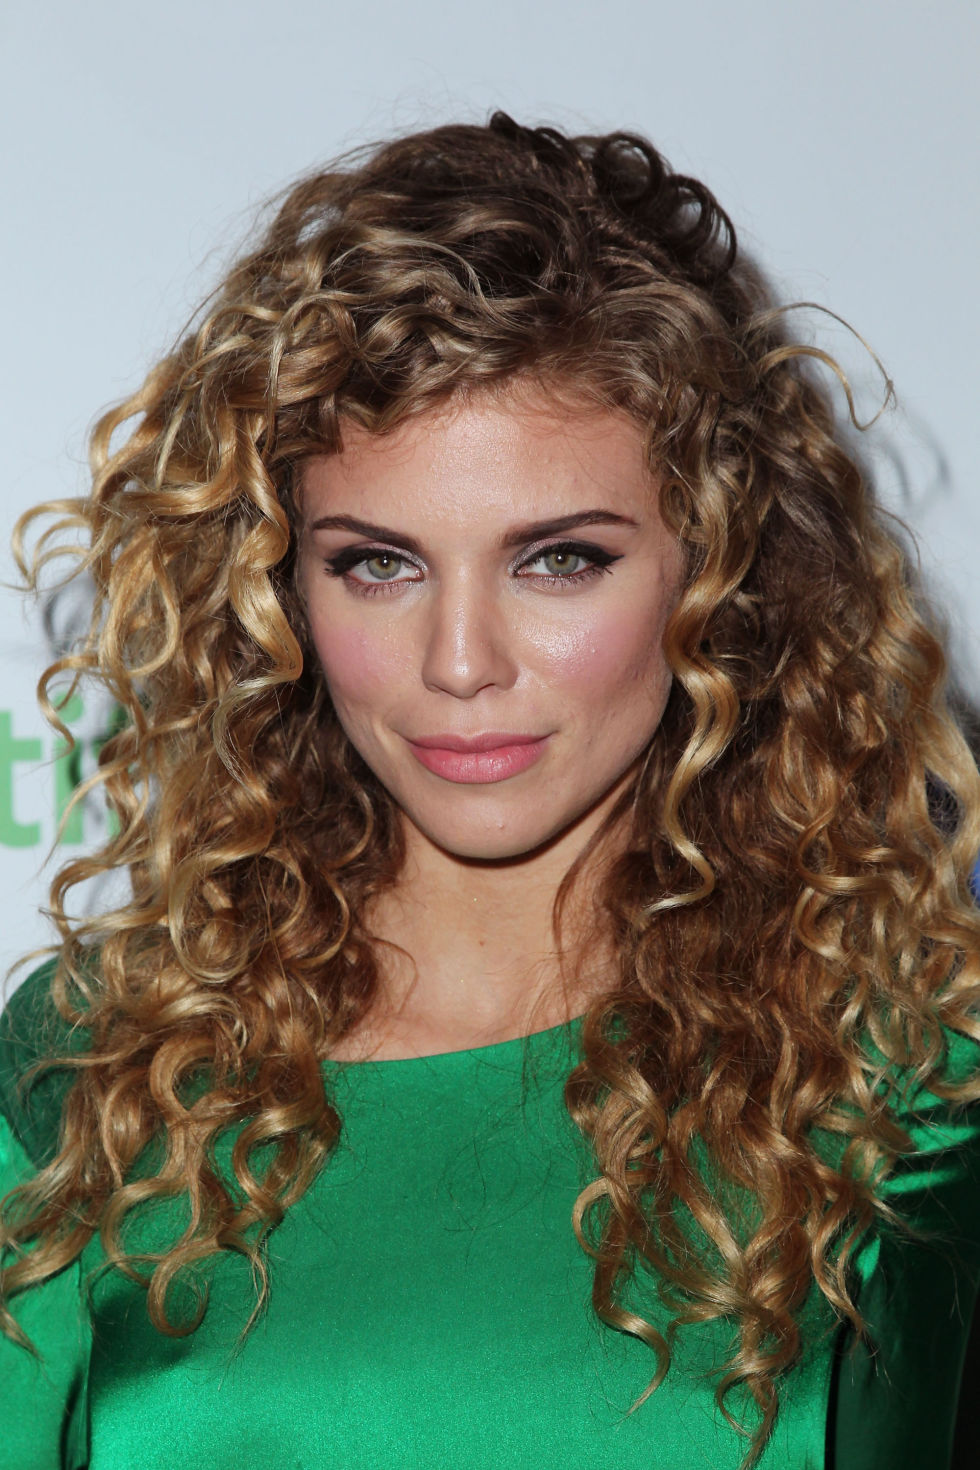 Tremendous 30 Best Curly Hairstyles Of 2017 Cute Hairstyles For Curly Hair Short Hairstyles For Black Women Fulllsitofus